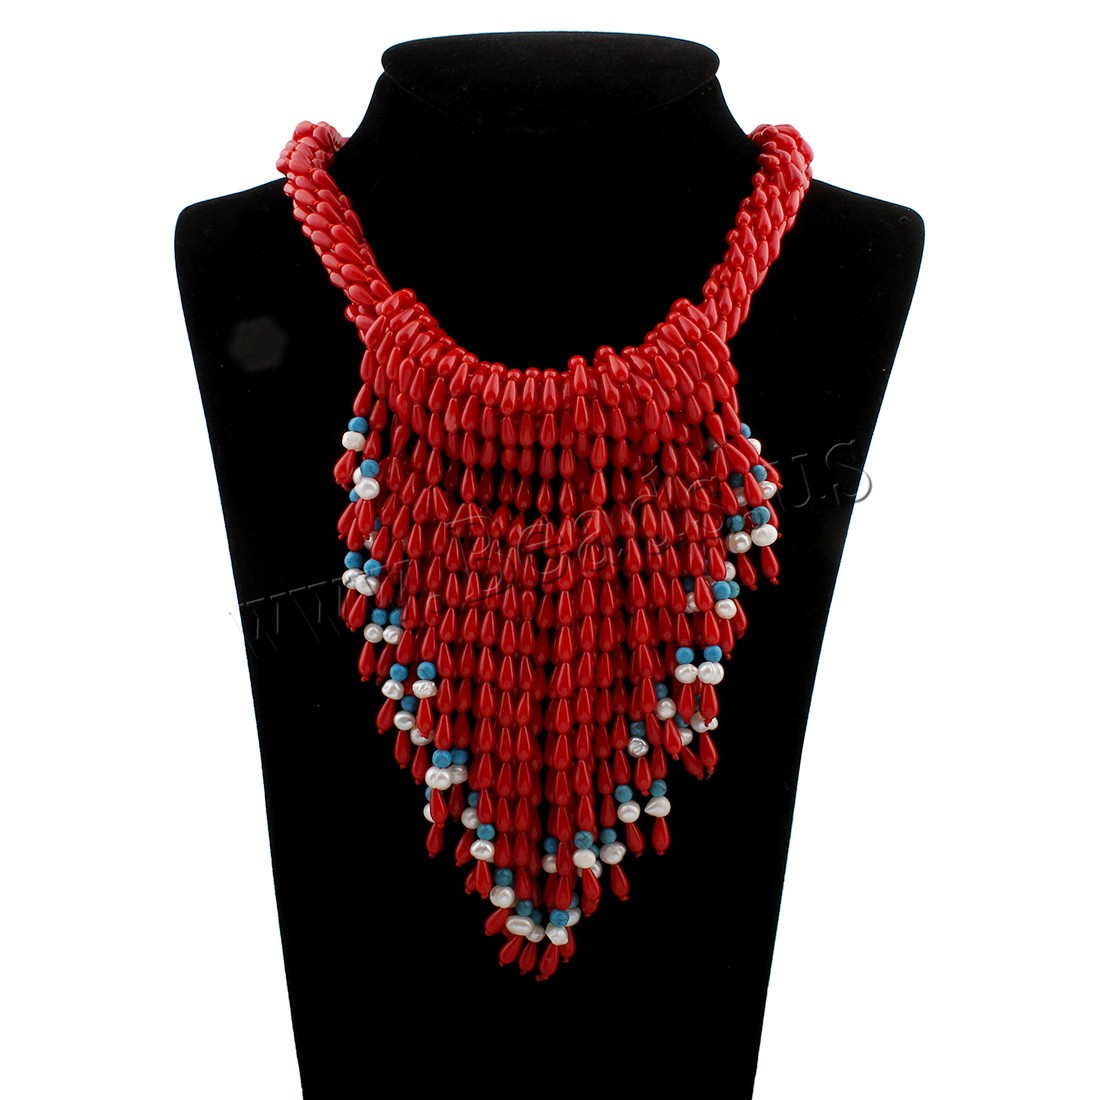 Buy Coral Necklace Natural Coral Turquoise & Freshwater Pearl brass spring ring clasp woman red 6x5x4mm Sold Per Approx 18.5 Inch Strand